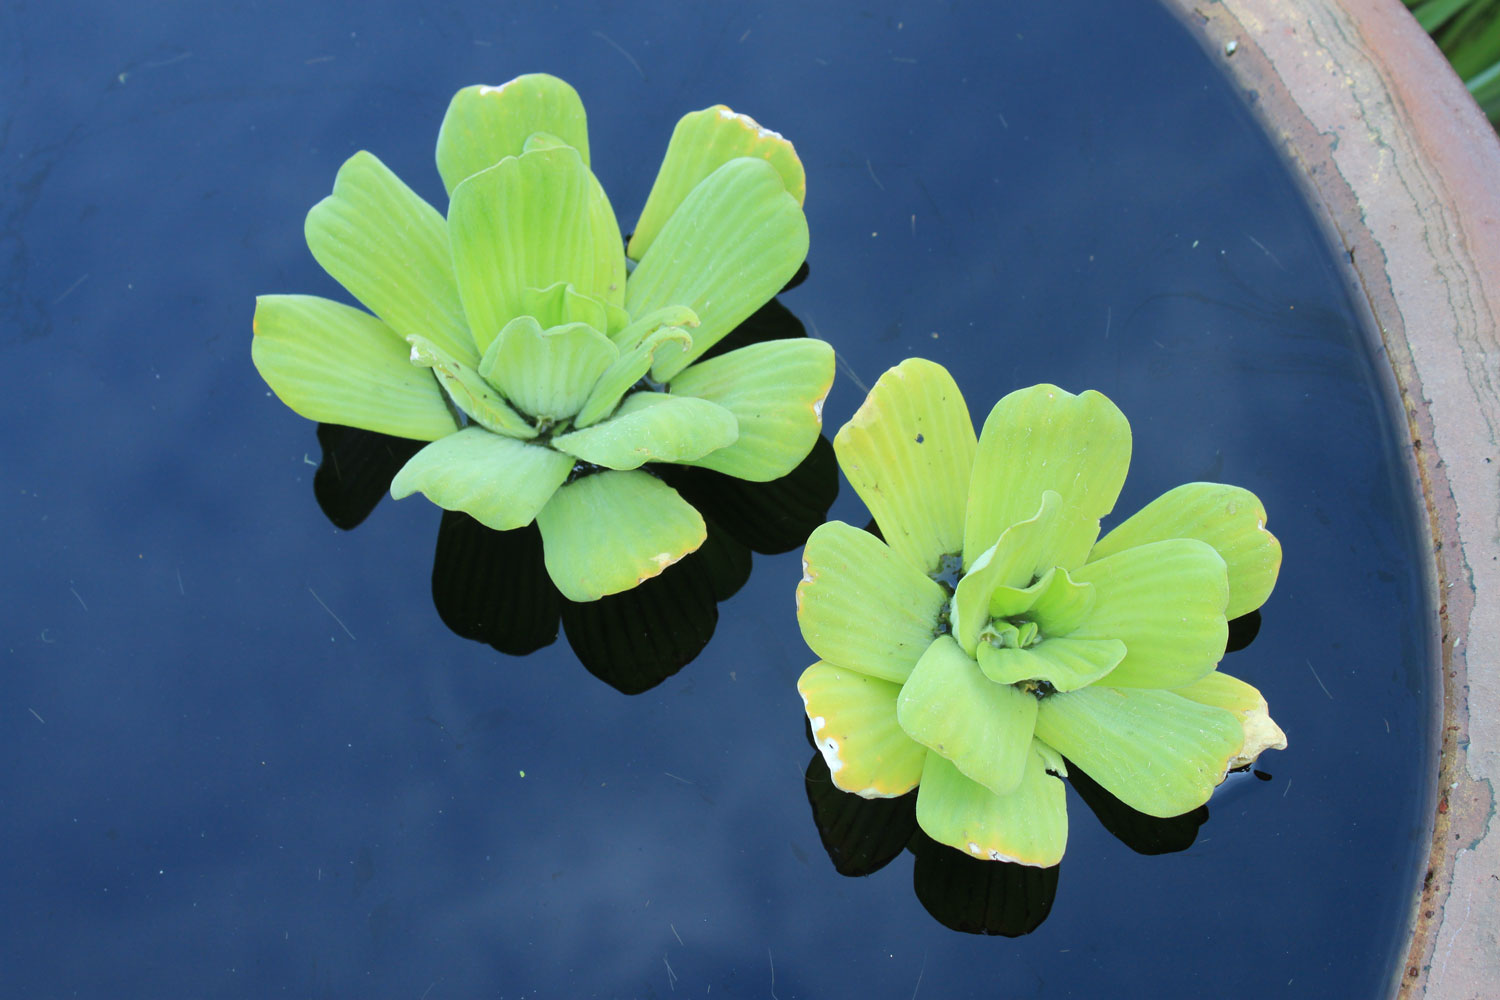 Water lettuce live pond plants for Using pond water for plants